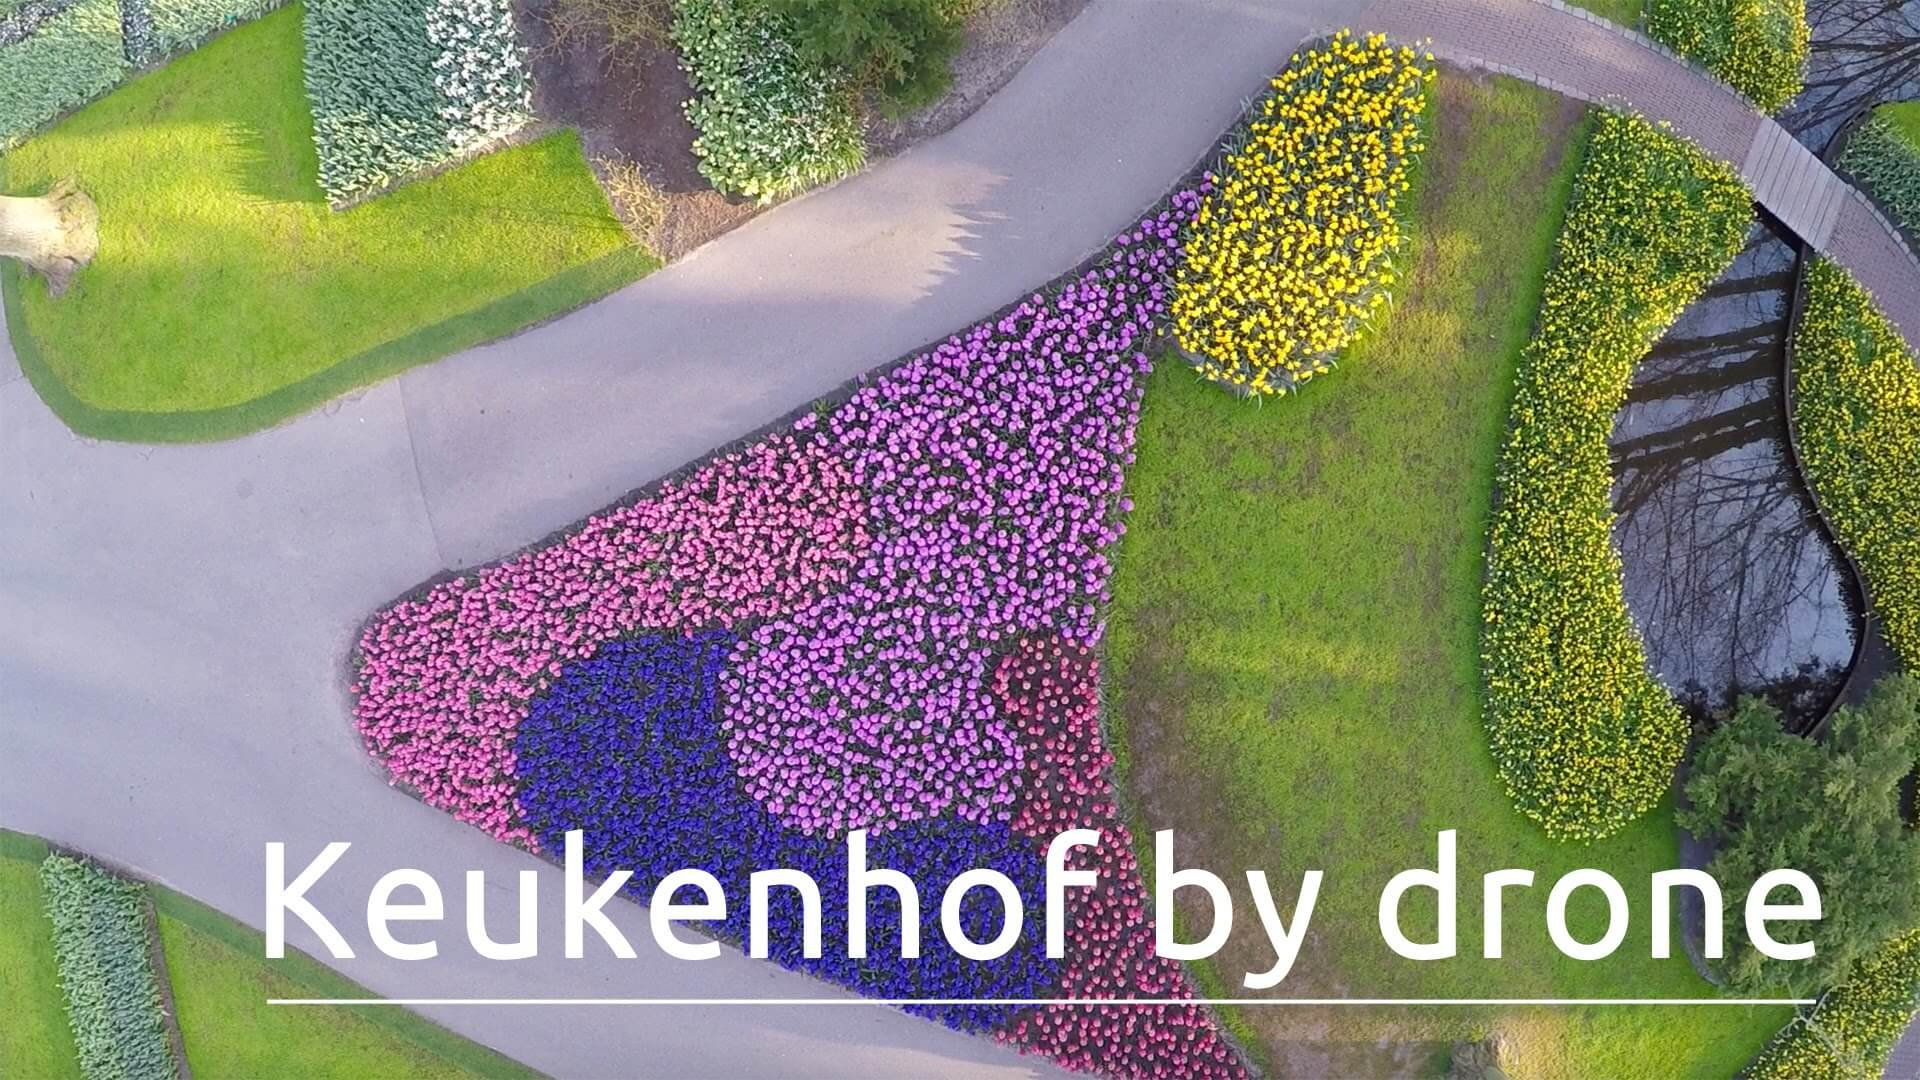 Video Amazing Views Of World S Largest Flower Garden From Drone